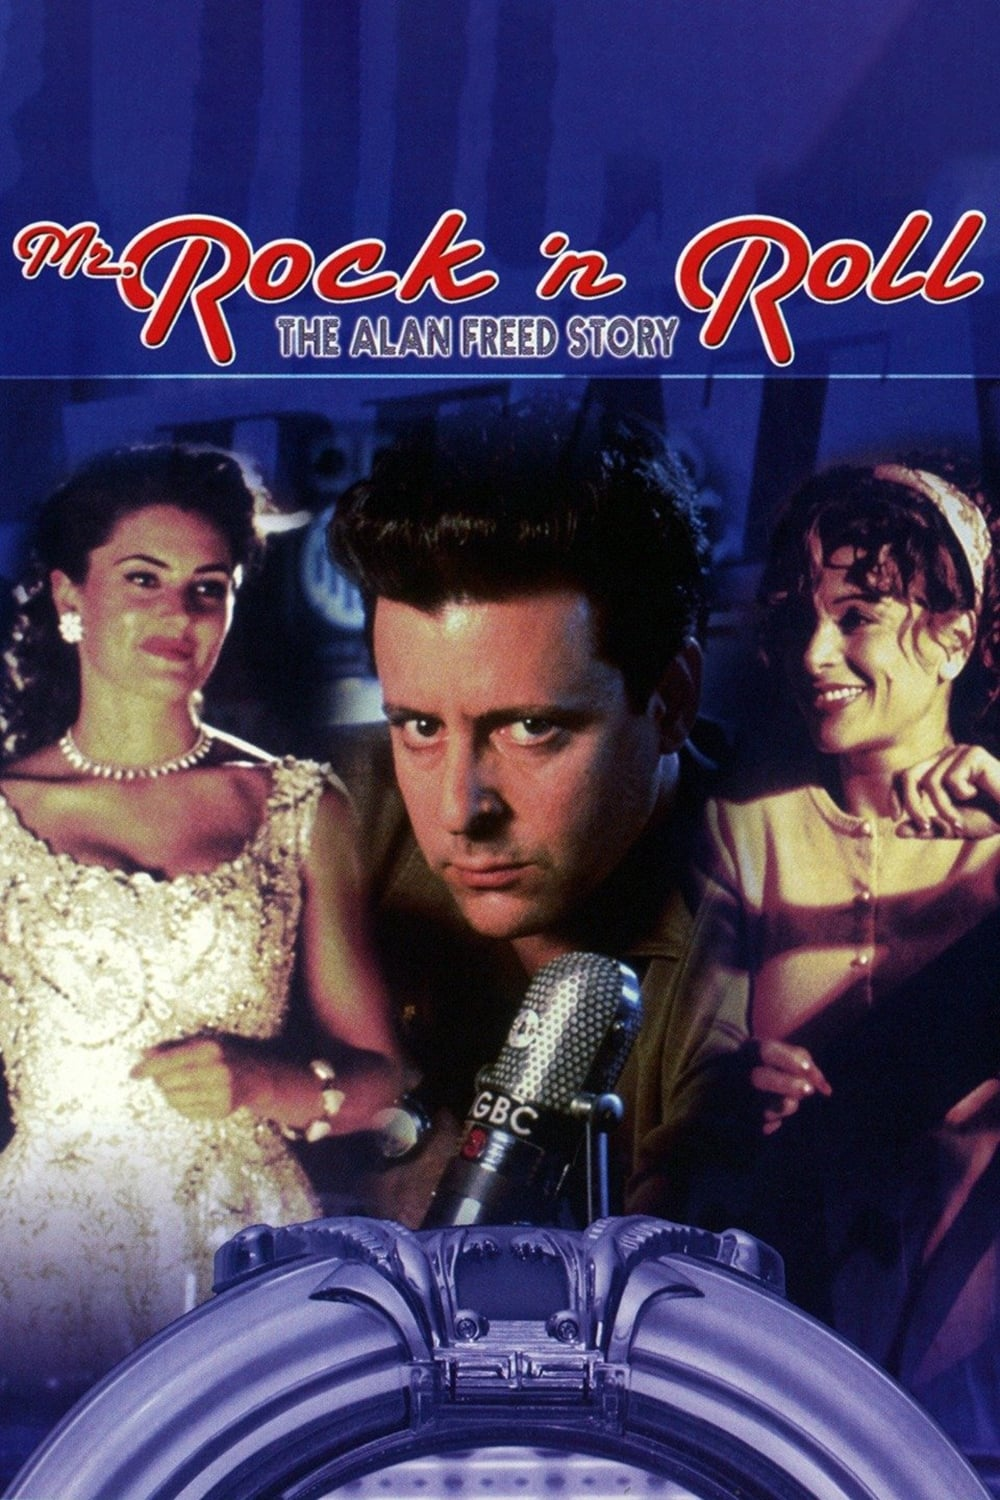 Mr. Rock n Roll: The Alan Freed Story (1999)